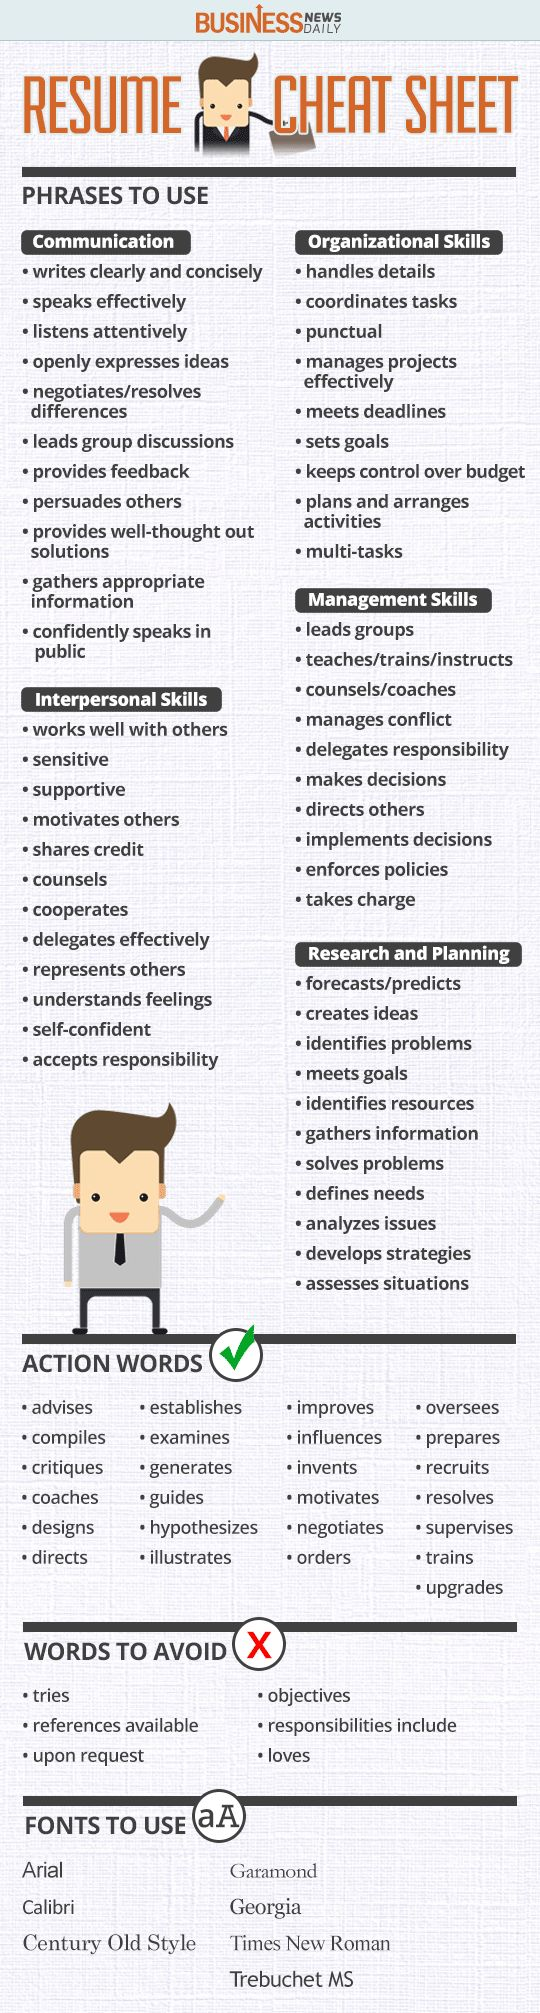 Opposenewapstandardsus  Scenic  Ideas About Resume On Pinterest  Cv Format Resume Cv And  With Great Resume Cheat Sheet Infographic Andrews Almost Done With A Complete Unit On Employment Which With Nice Biotechnology Resume Also What Are Resumes In Addition Immigration Paralegal Resume And Where Can I Make A Free Resume As Well As Fill Out A Resume Additionally Building The Perfect Resume From Pinterestcom With Opposenewapstandardsus  Great  Ideas About Resume On Pinterest  Cv Format Resume Cv And  With Nice Resume Cheat Sheet Infographic Andrews Almost Done With A Complete Unit On Employment Which And Scenic Biotechnology Resume Also What Are Resumes In Addition Immigration Paralegal Resume From Pinterestcom